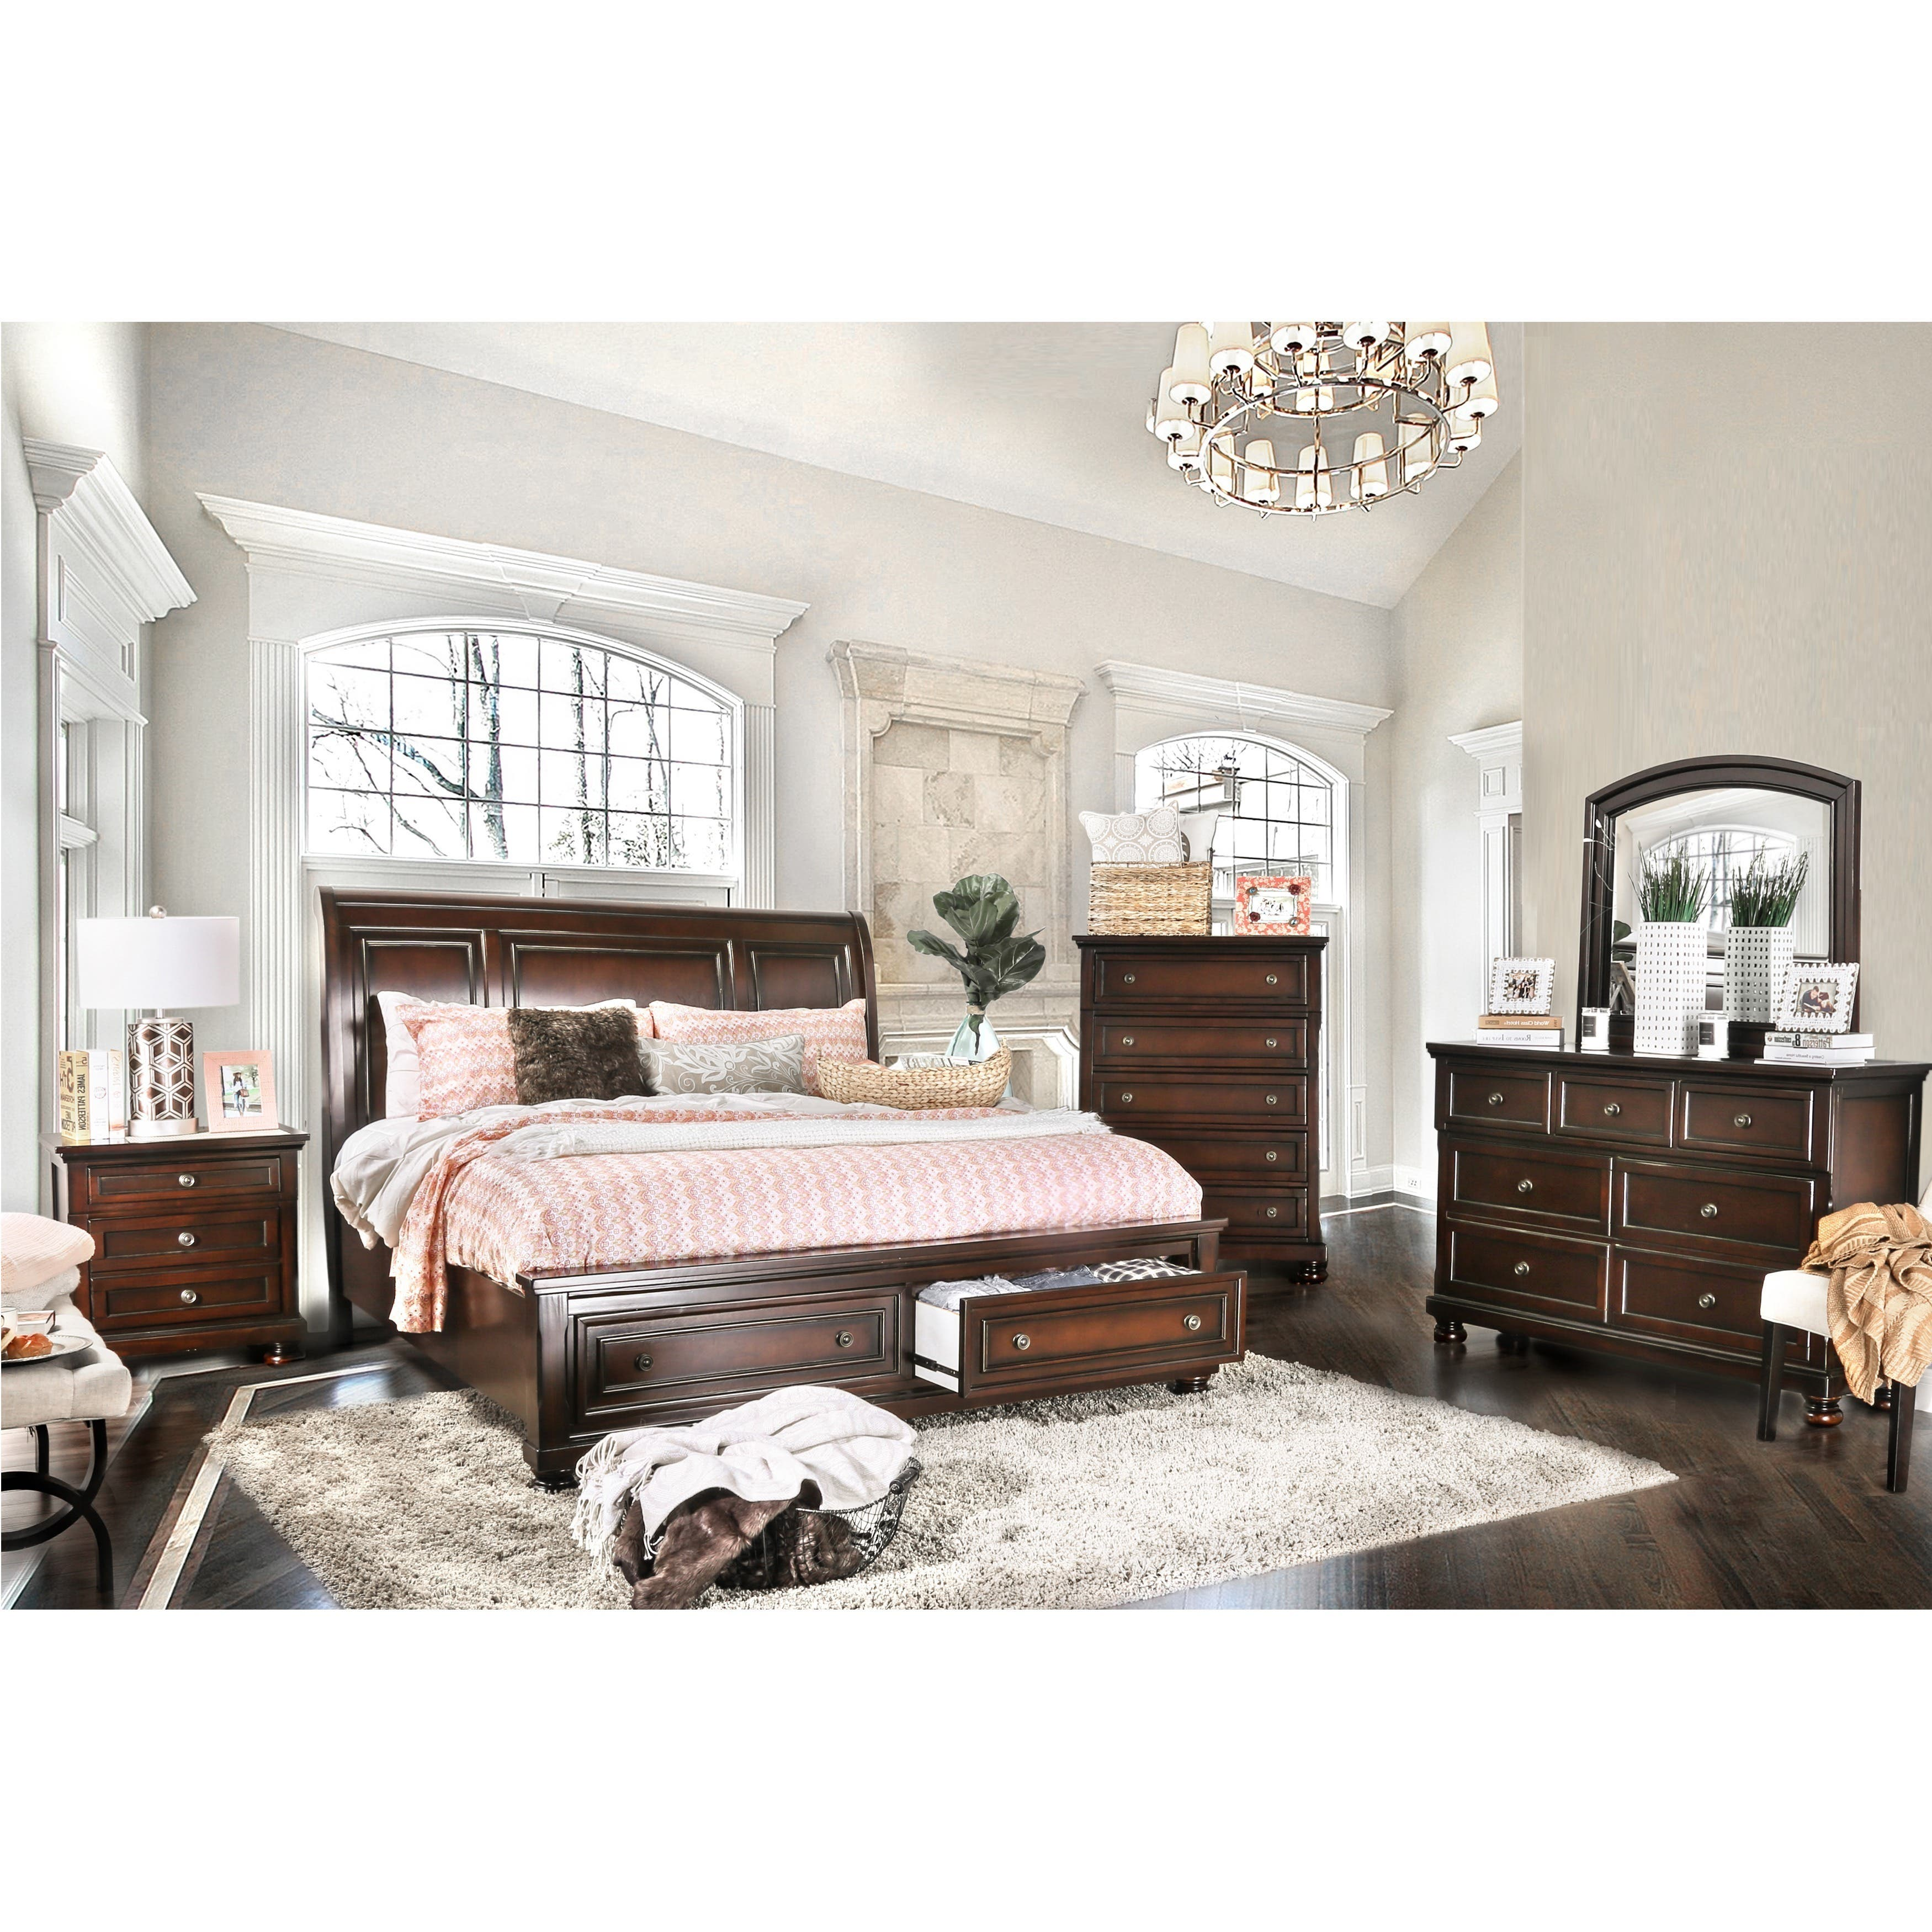 Best Place To Buy Bedroom Furniture: Buy Bedroom Sets Online At Overstock.com